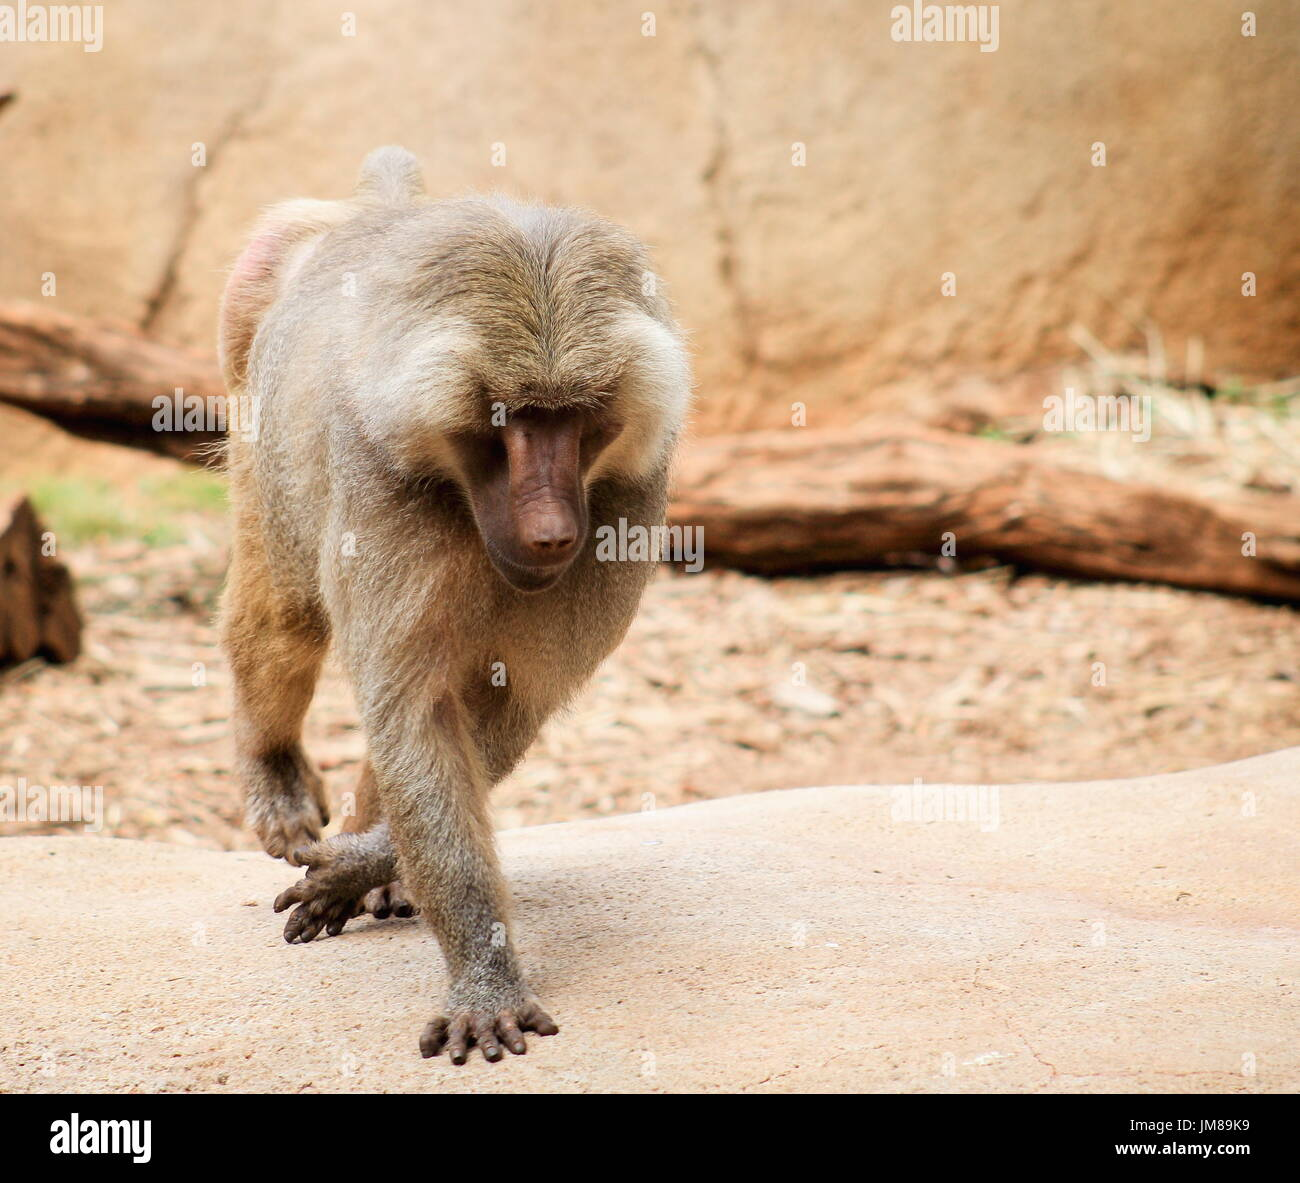 The hamadryas baboon - a species of baboon from the Old World monkey family. - Stock Image